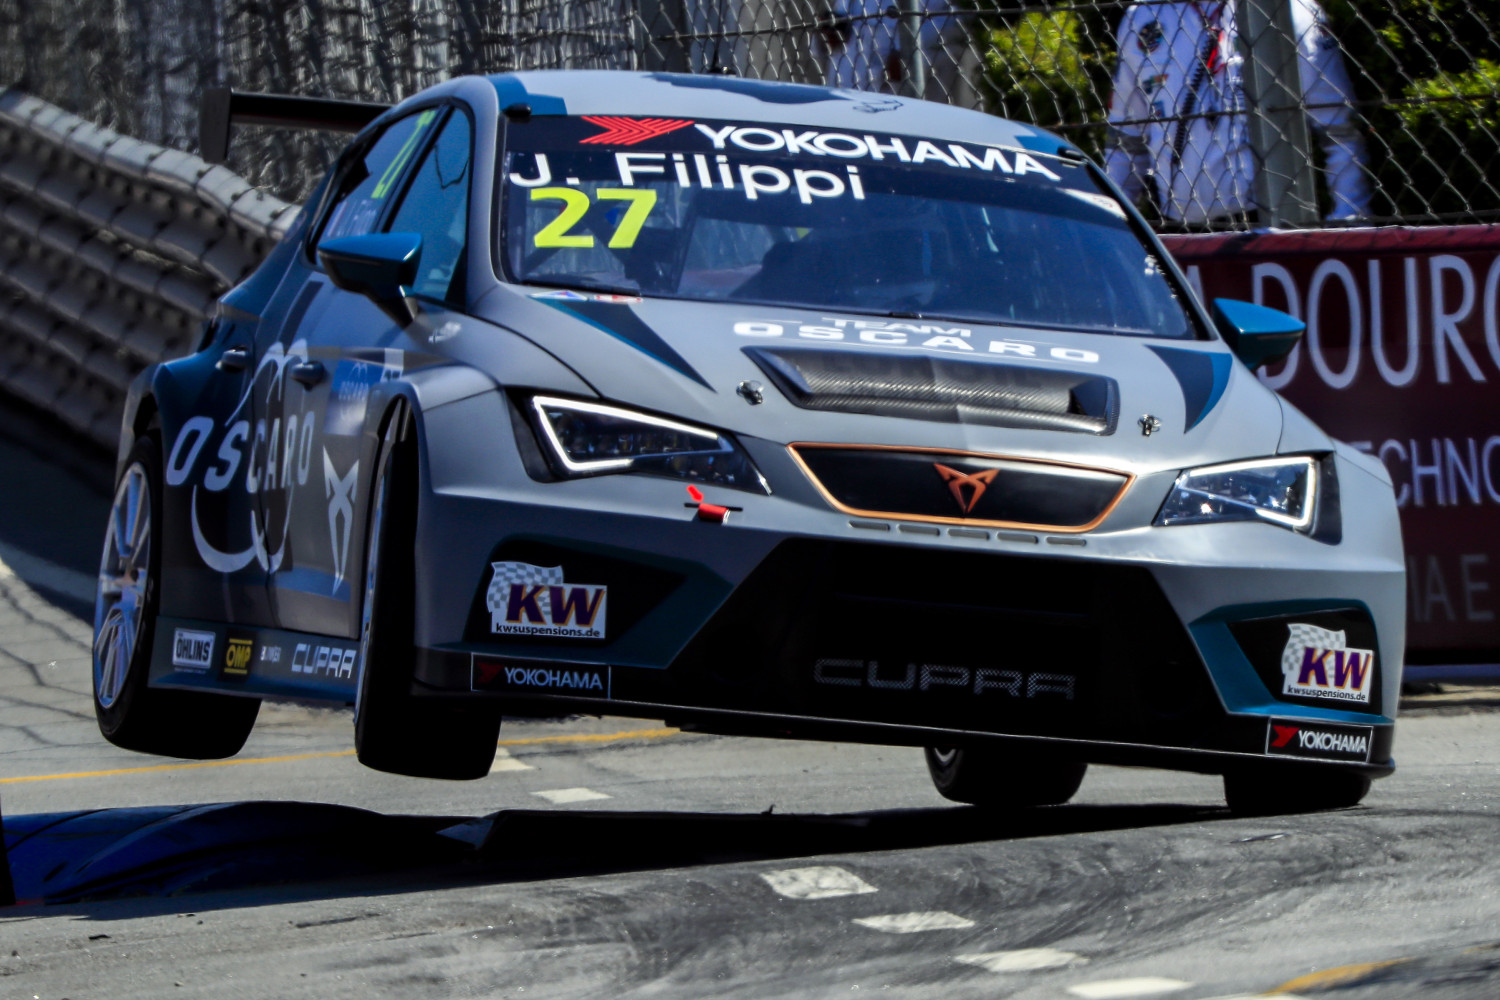 27 FILIPPI John, (fra), Seat Cupra TCR team Oscaro by Campos Racing, action, during the 2018 FIA WTCR World Touring Car cup of Portugal, Vila Real from june 22 to 24 - Photo Paulo Maria / DPPI